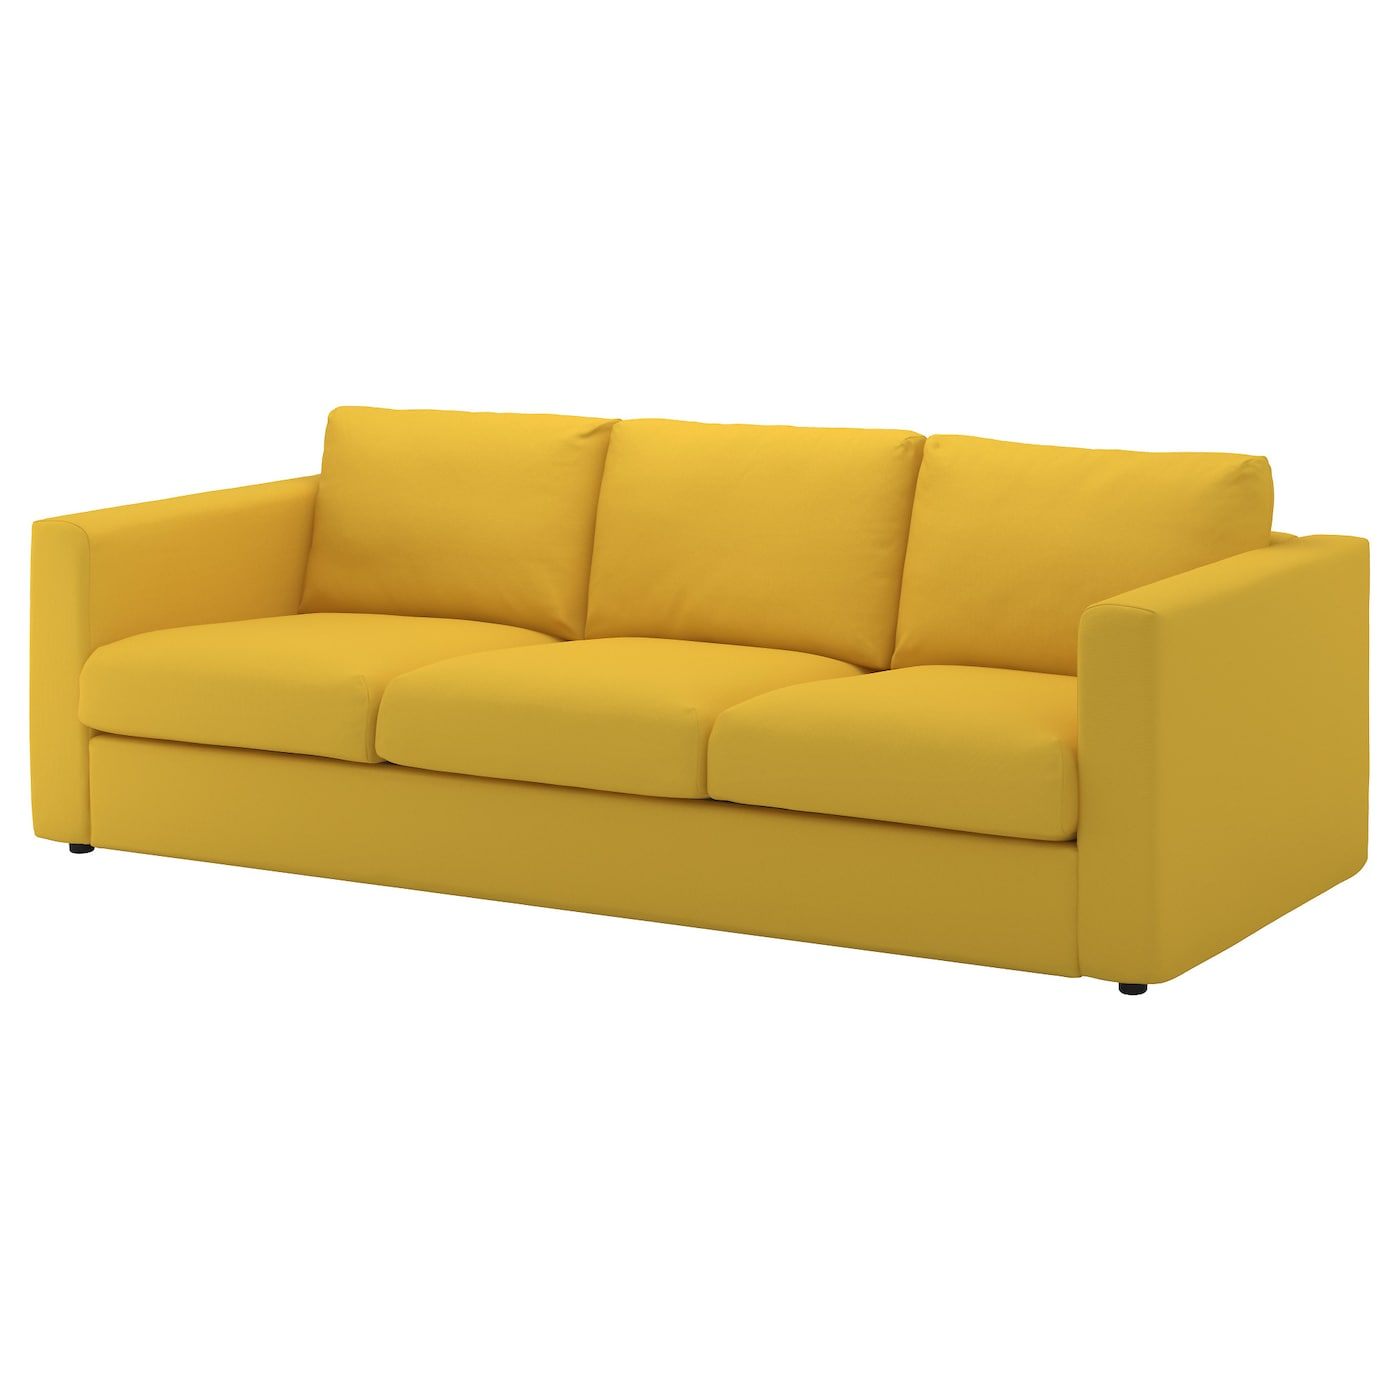 Ikea yellow sofa vimle 3 seat sofa with chaise longue for Chaise urban ikea